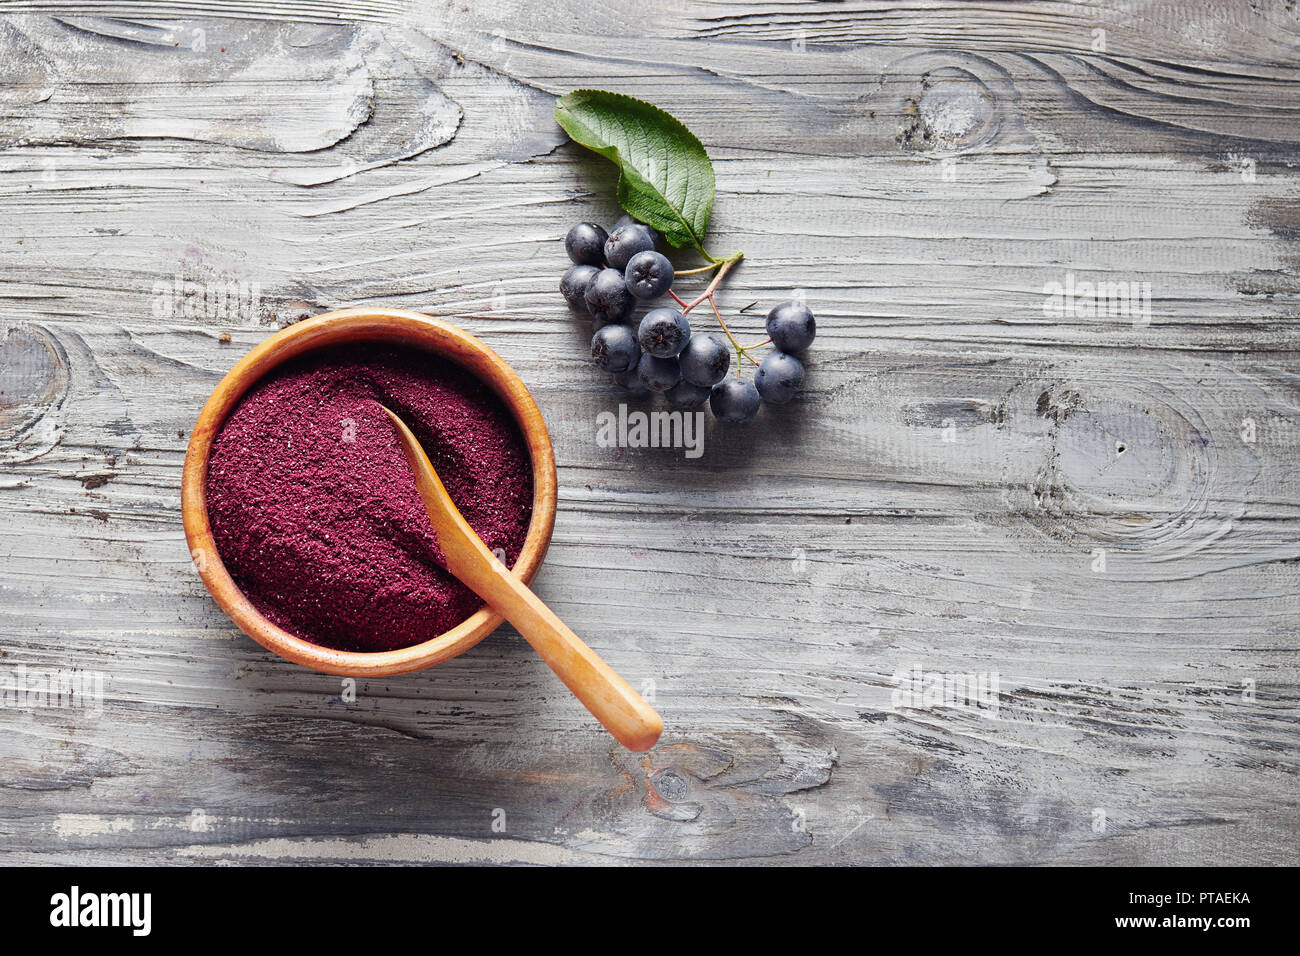 Organic Aronia powder in a bowl with fresh aronia berries on table. - Stock Image